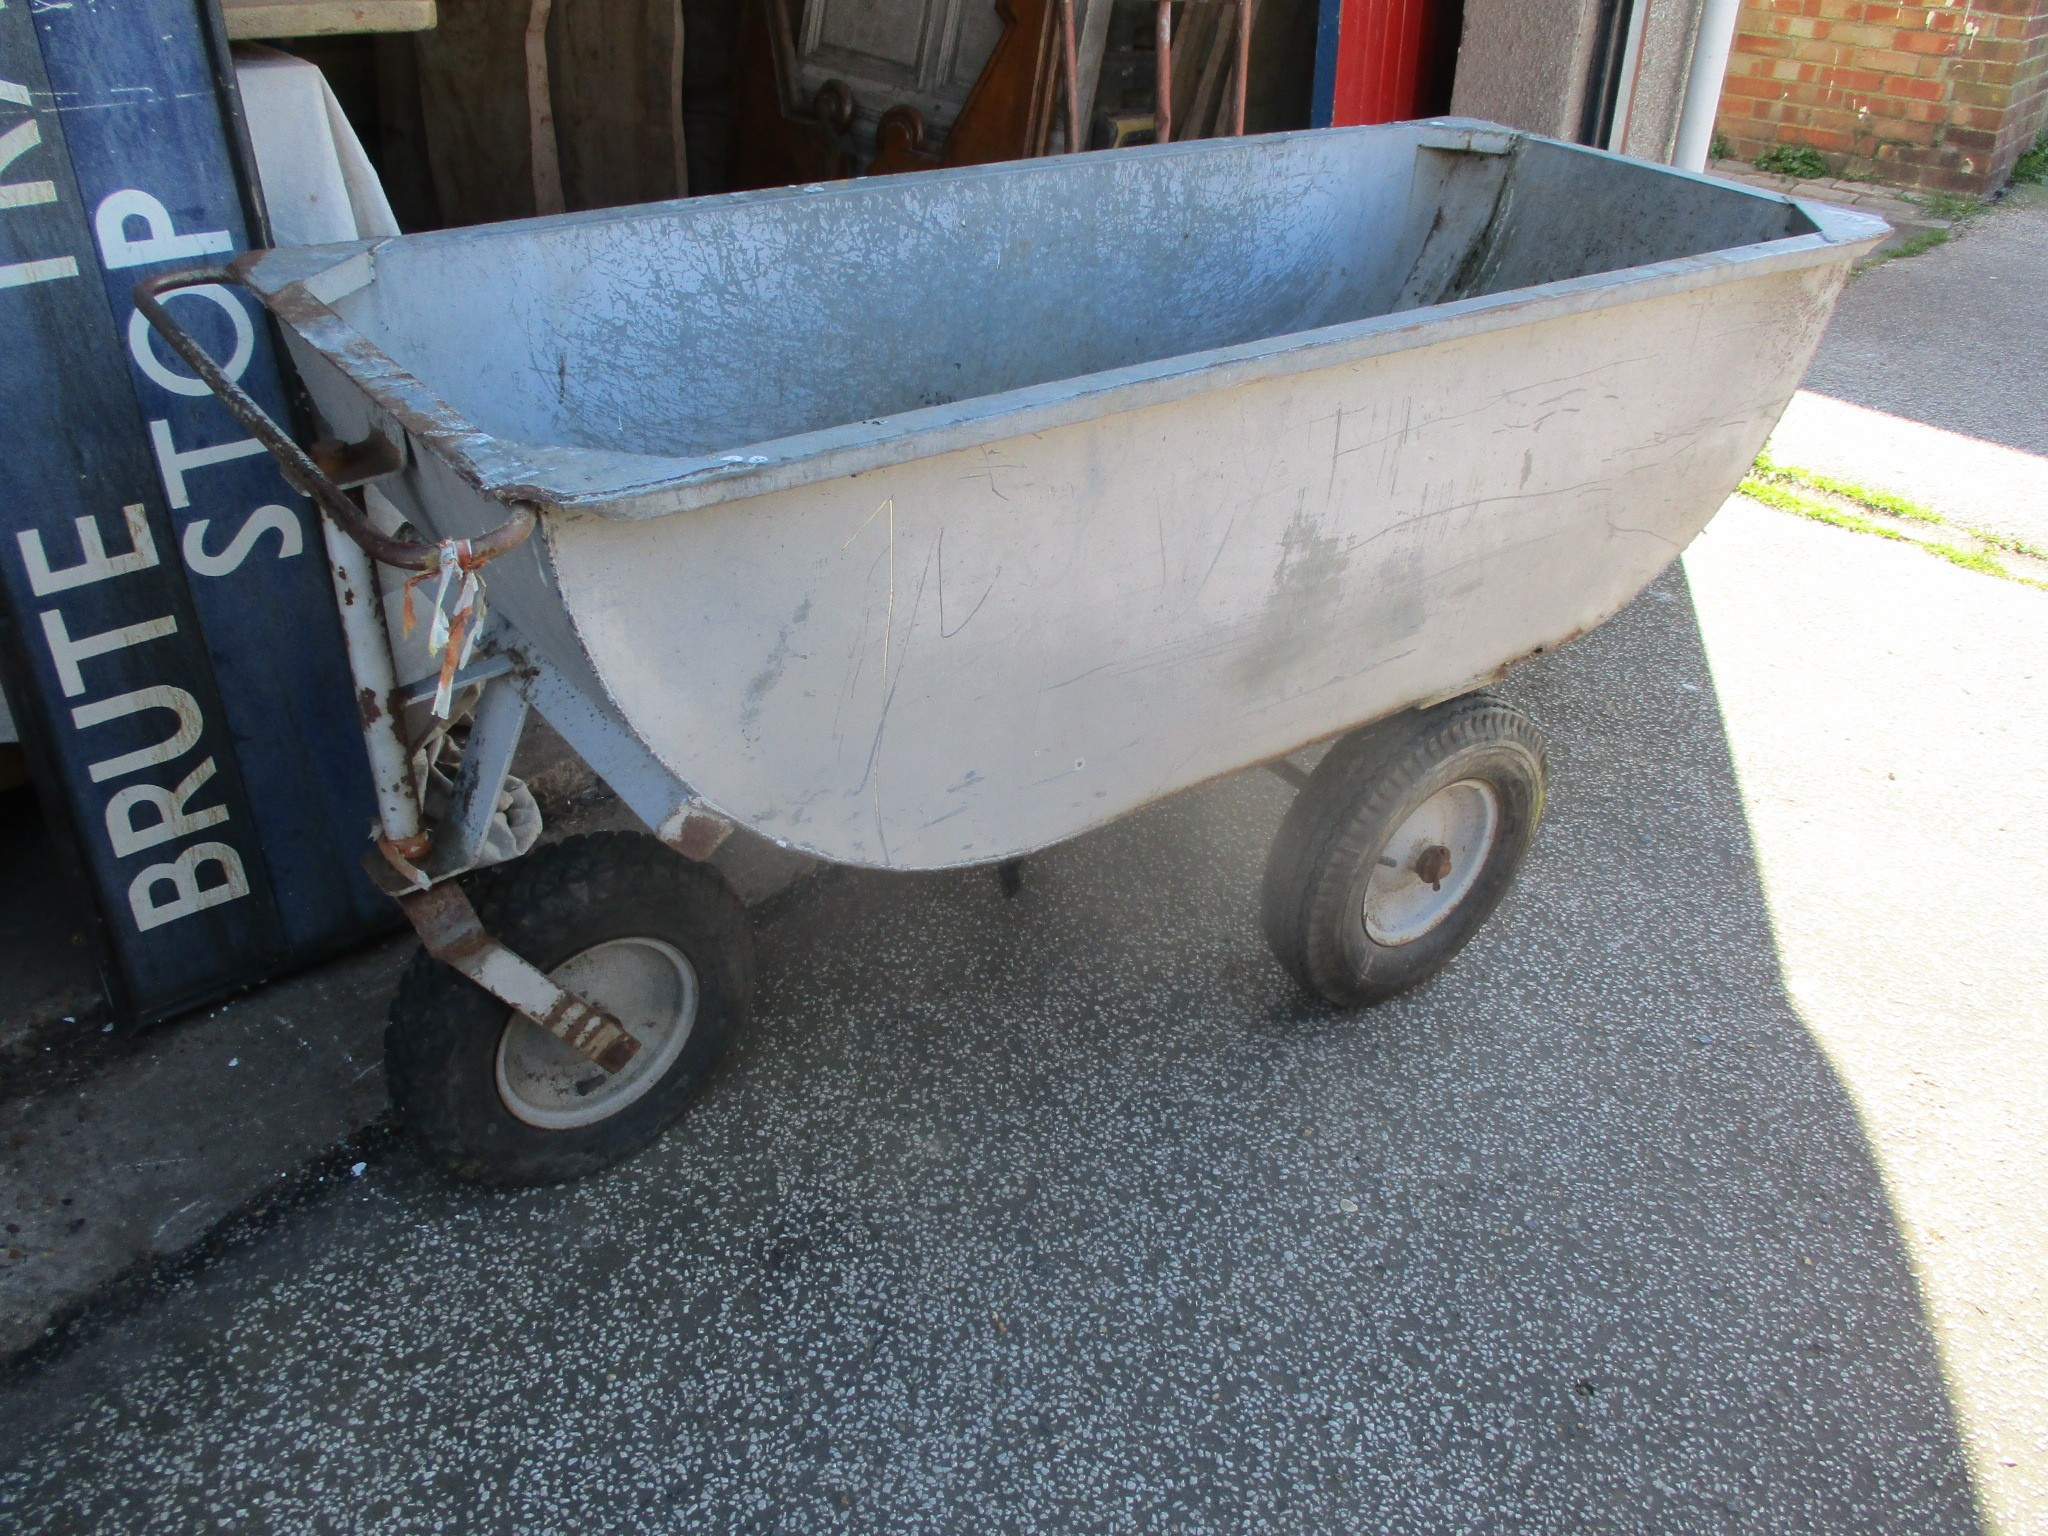 Ritchie Manufacturing of Scotland 3-wheeled agricultural trolley cart